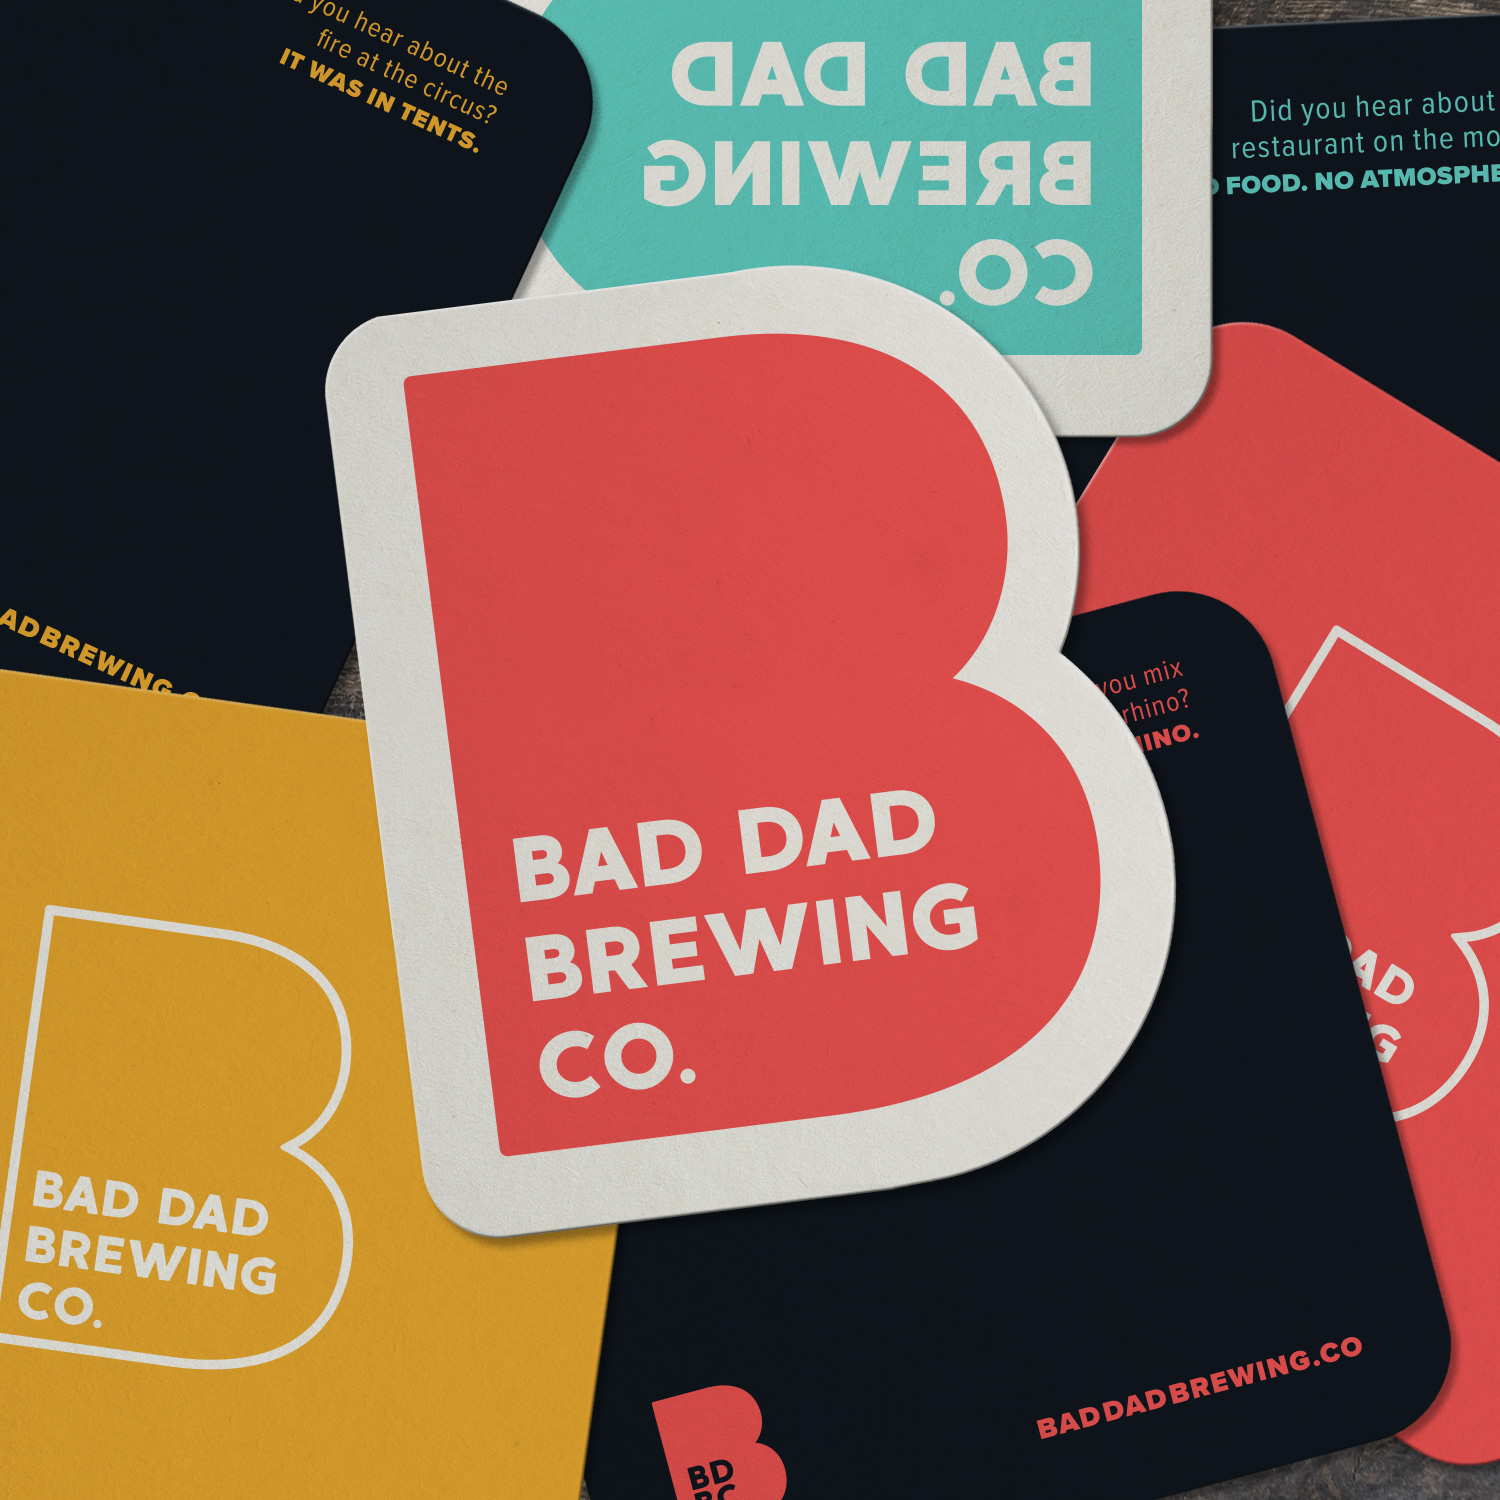 Branding a small-town brewery known for big-city quality